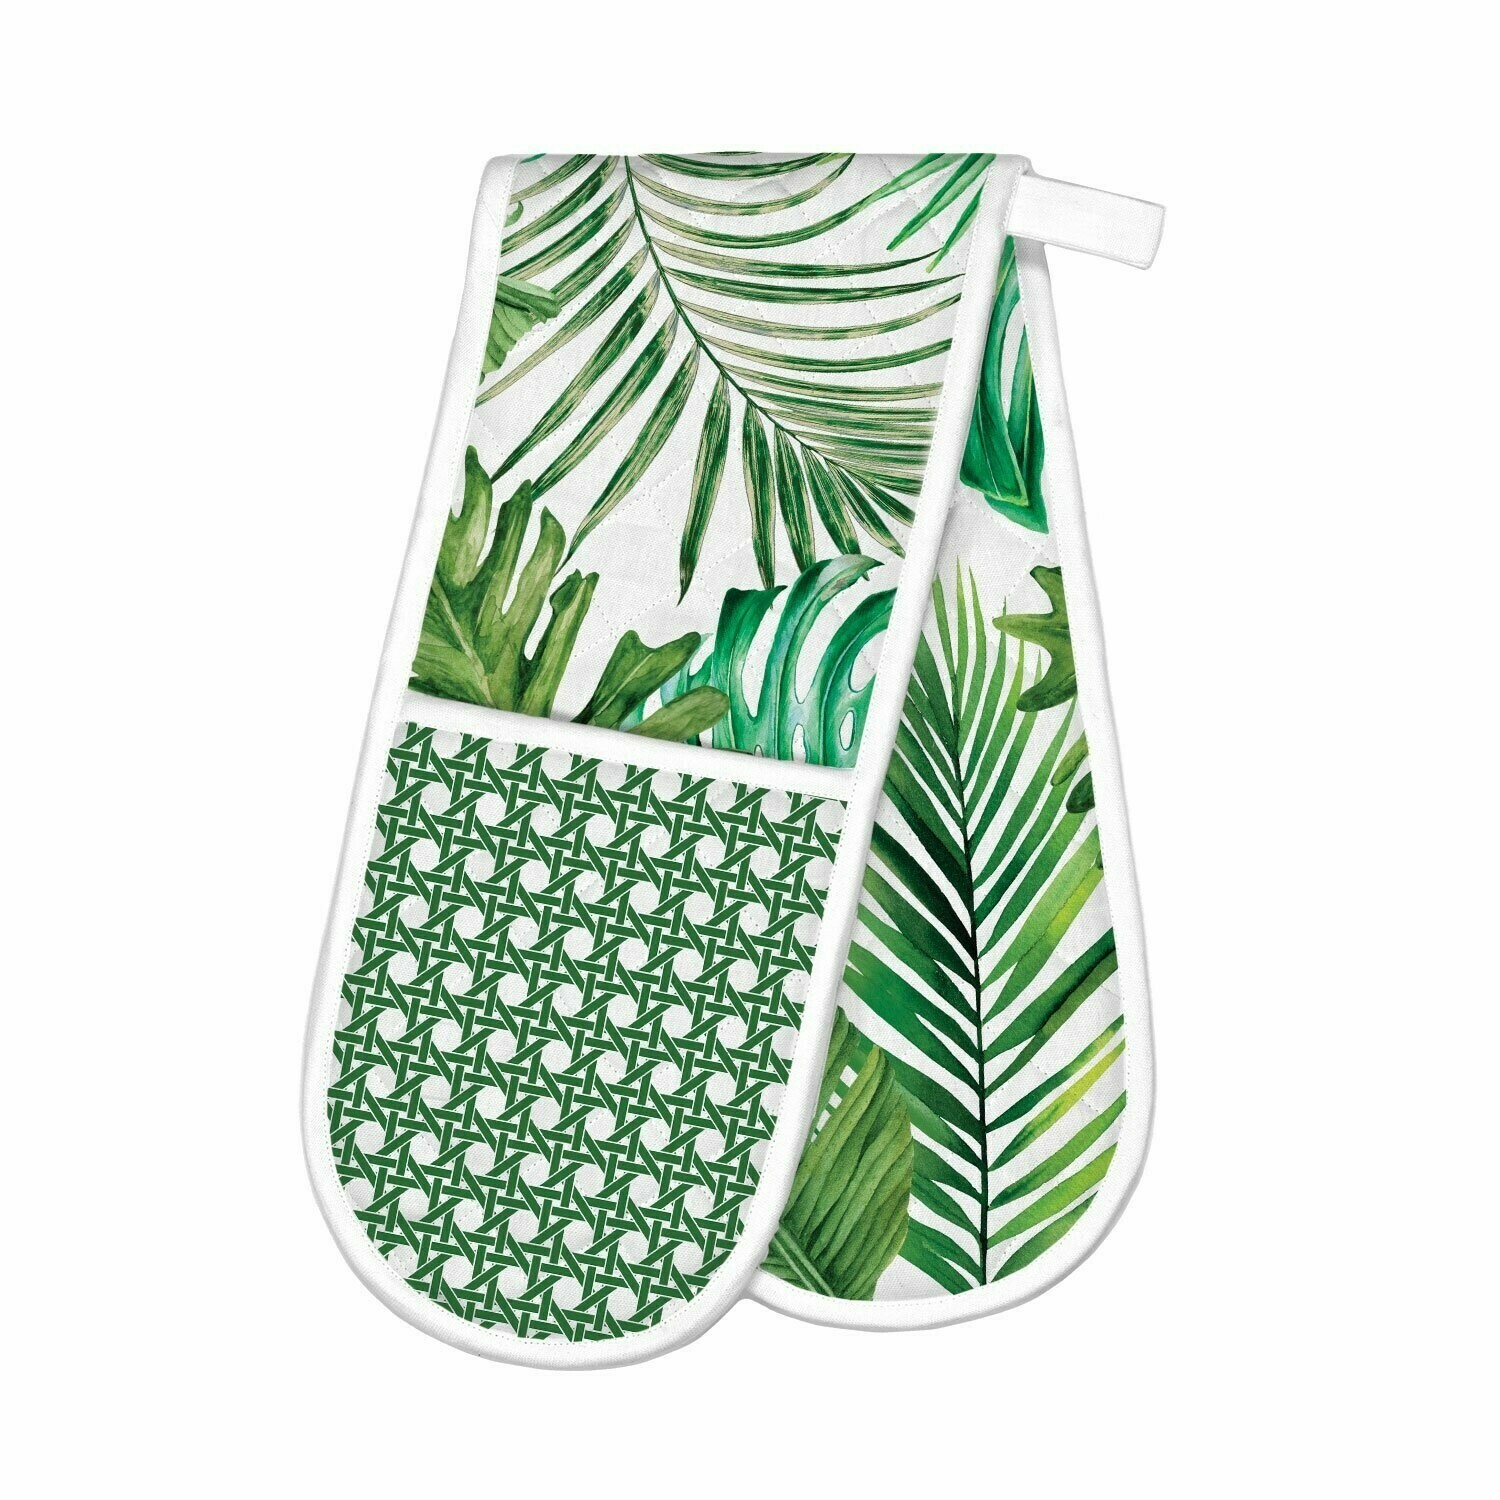 Michel Design Works Double Oven Gloves - Palm Leaves